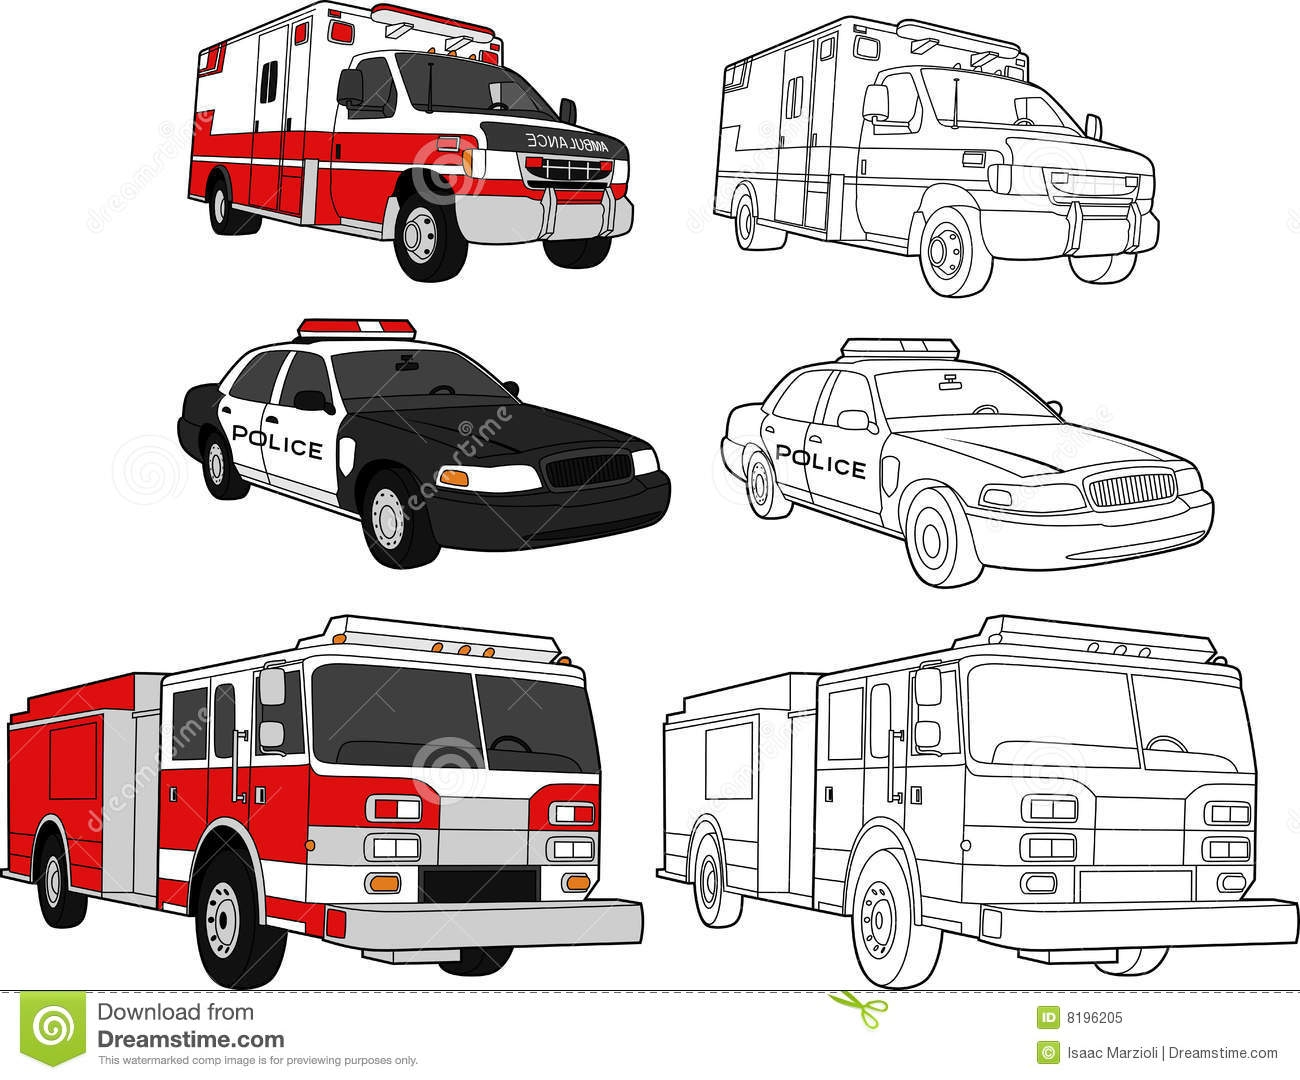 garbage truck coloring page - royalty free stock photo ambulance police car fire engine image